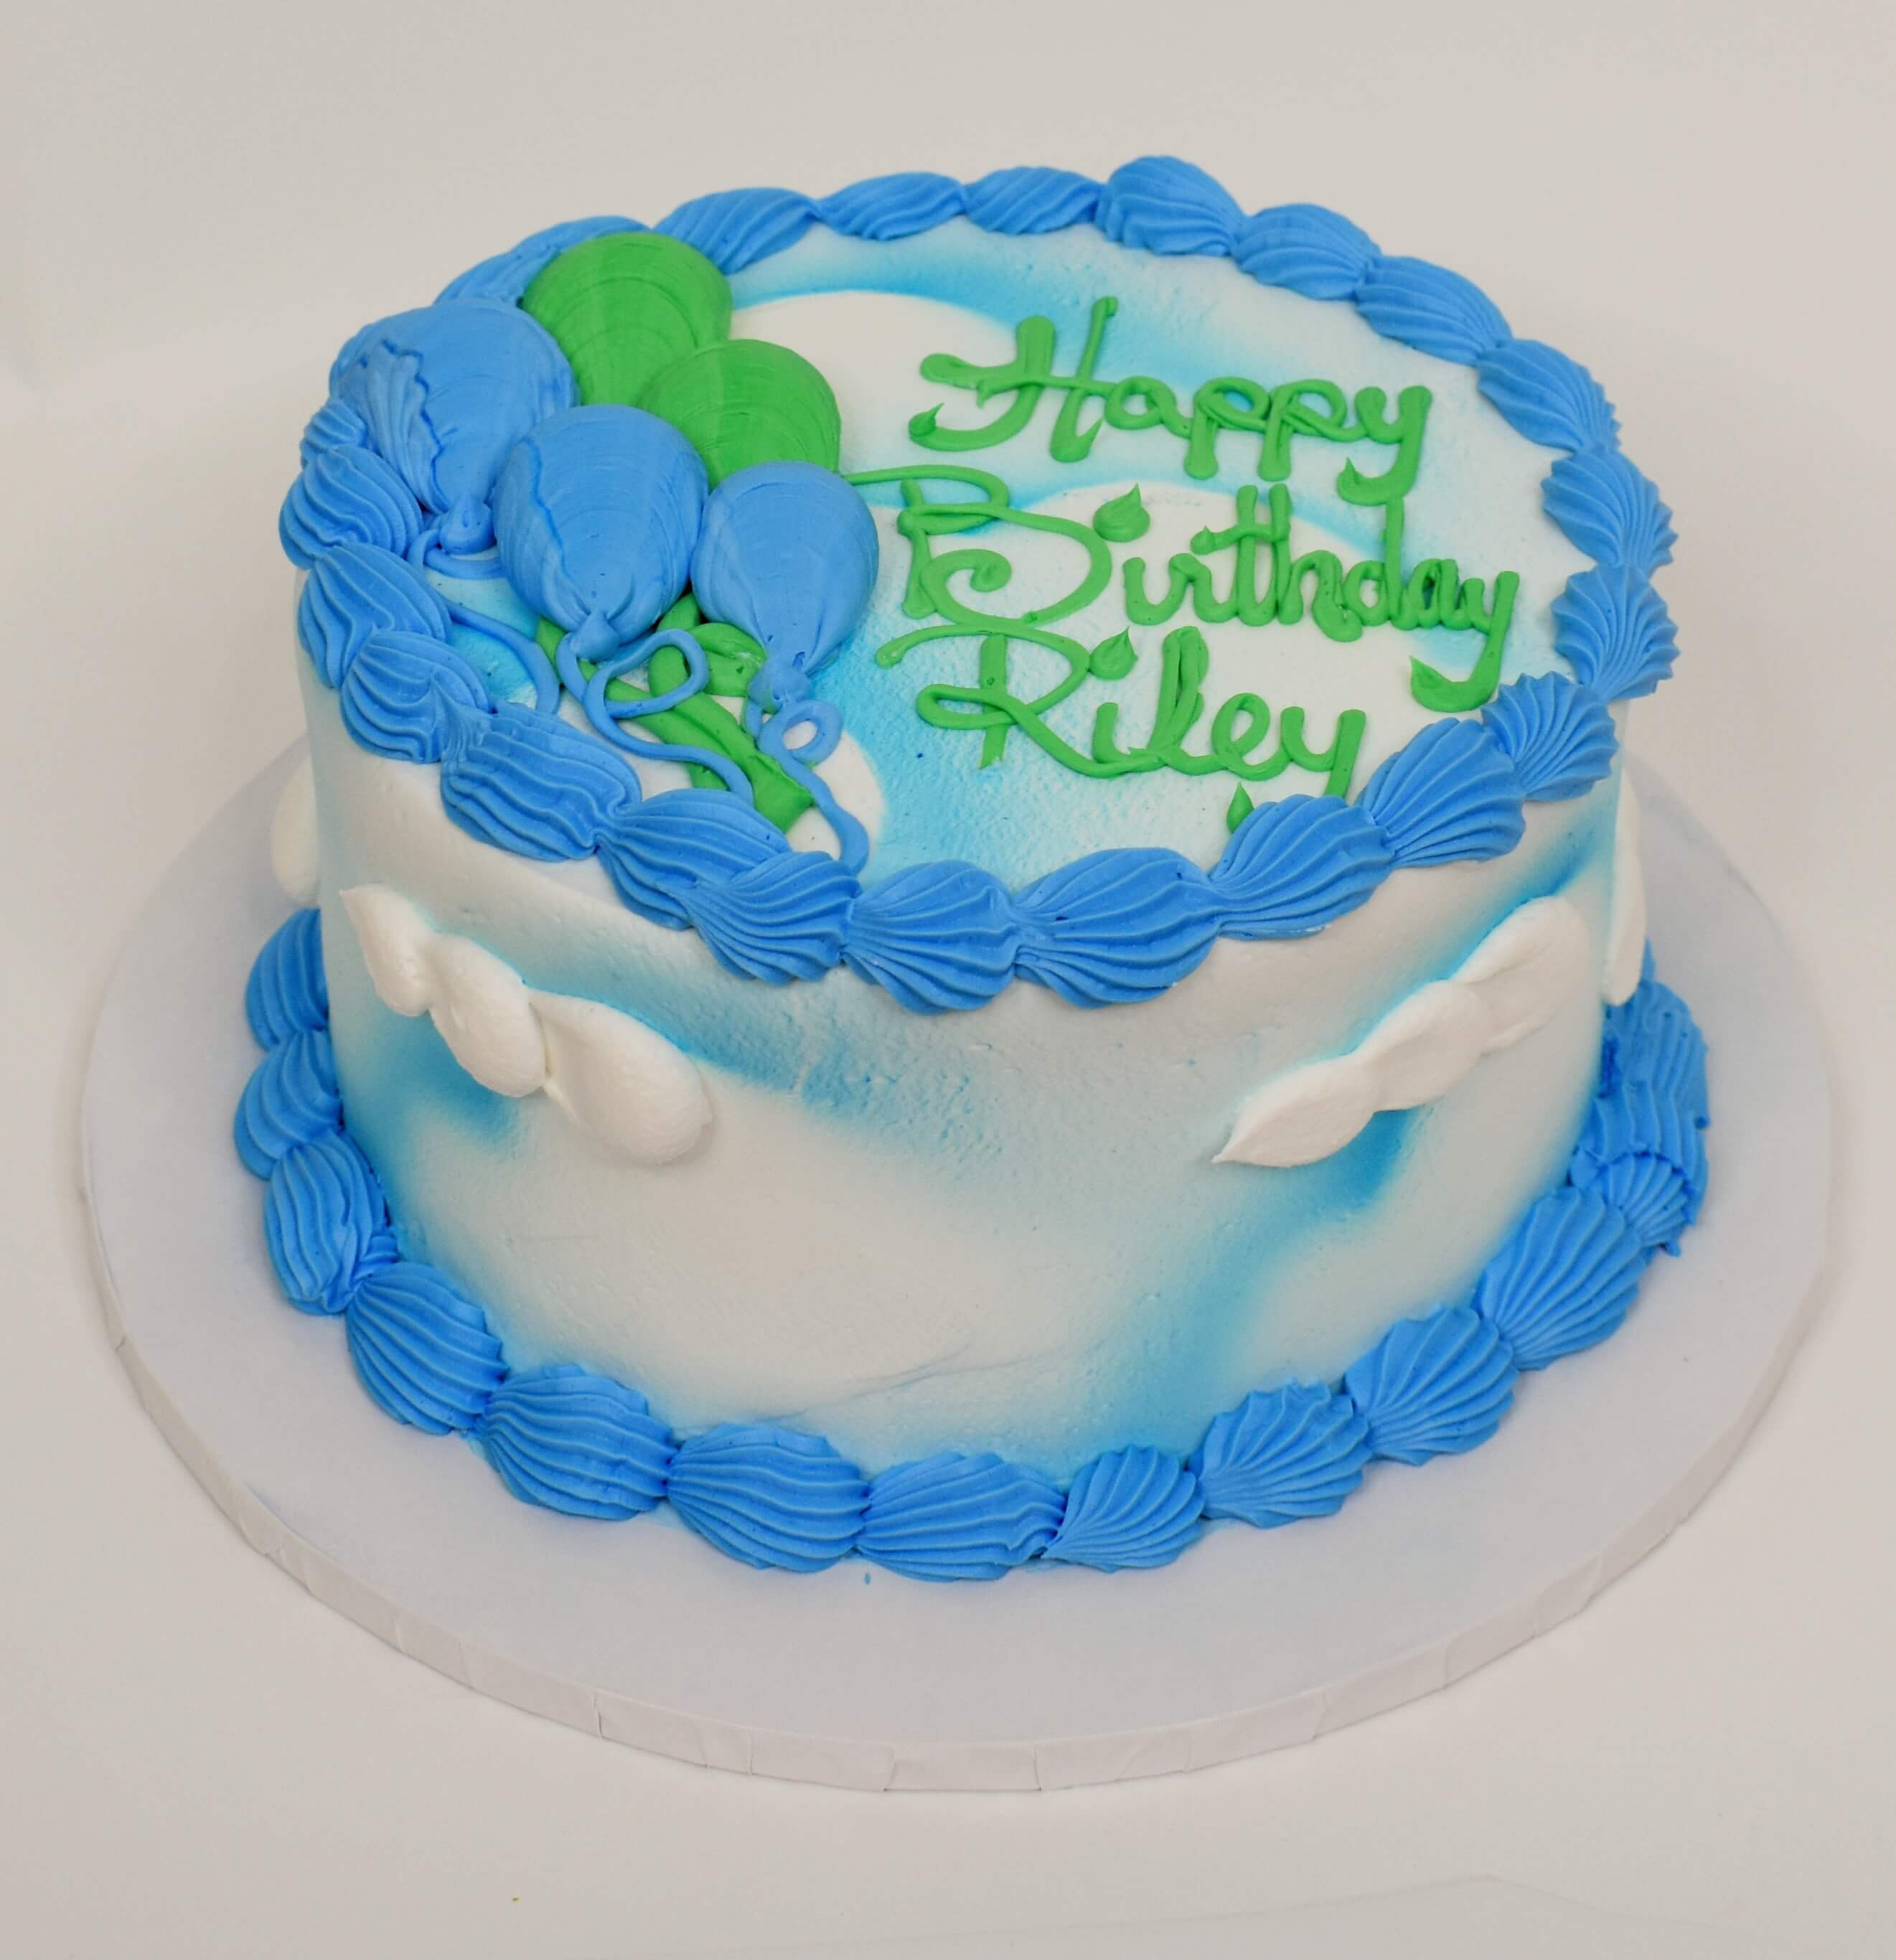 McArthur's Bakery Custom Cake with Blue and Green Balloons, White Clouds and Sky